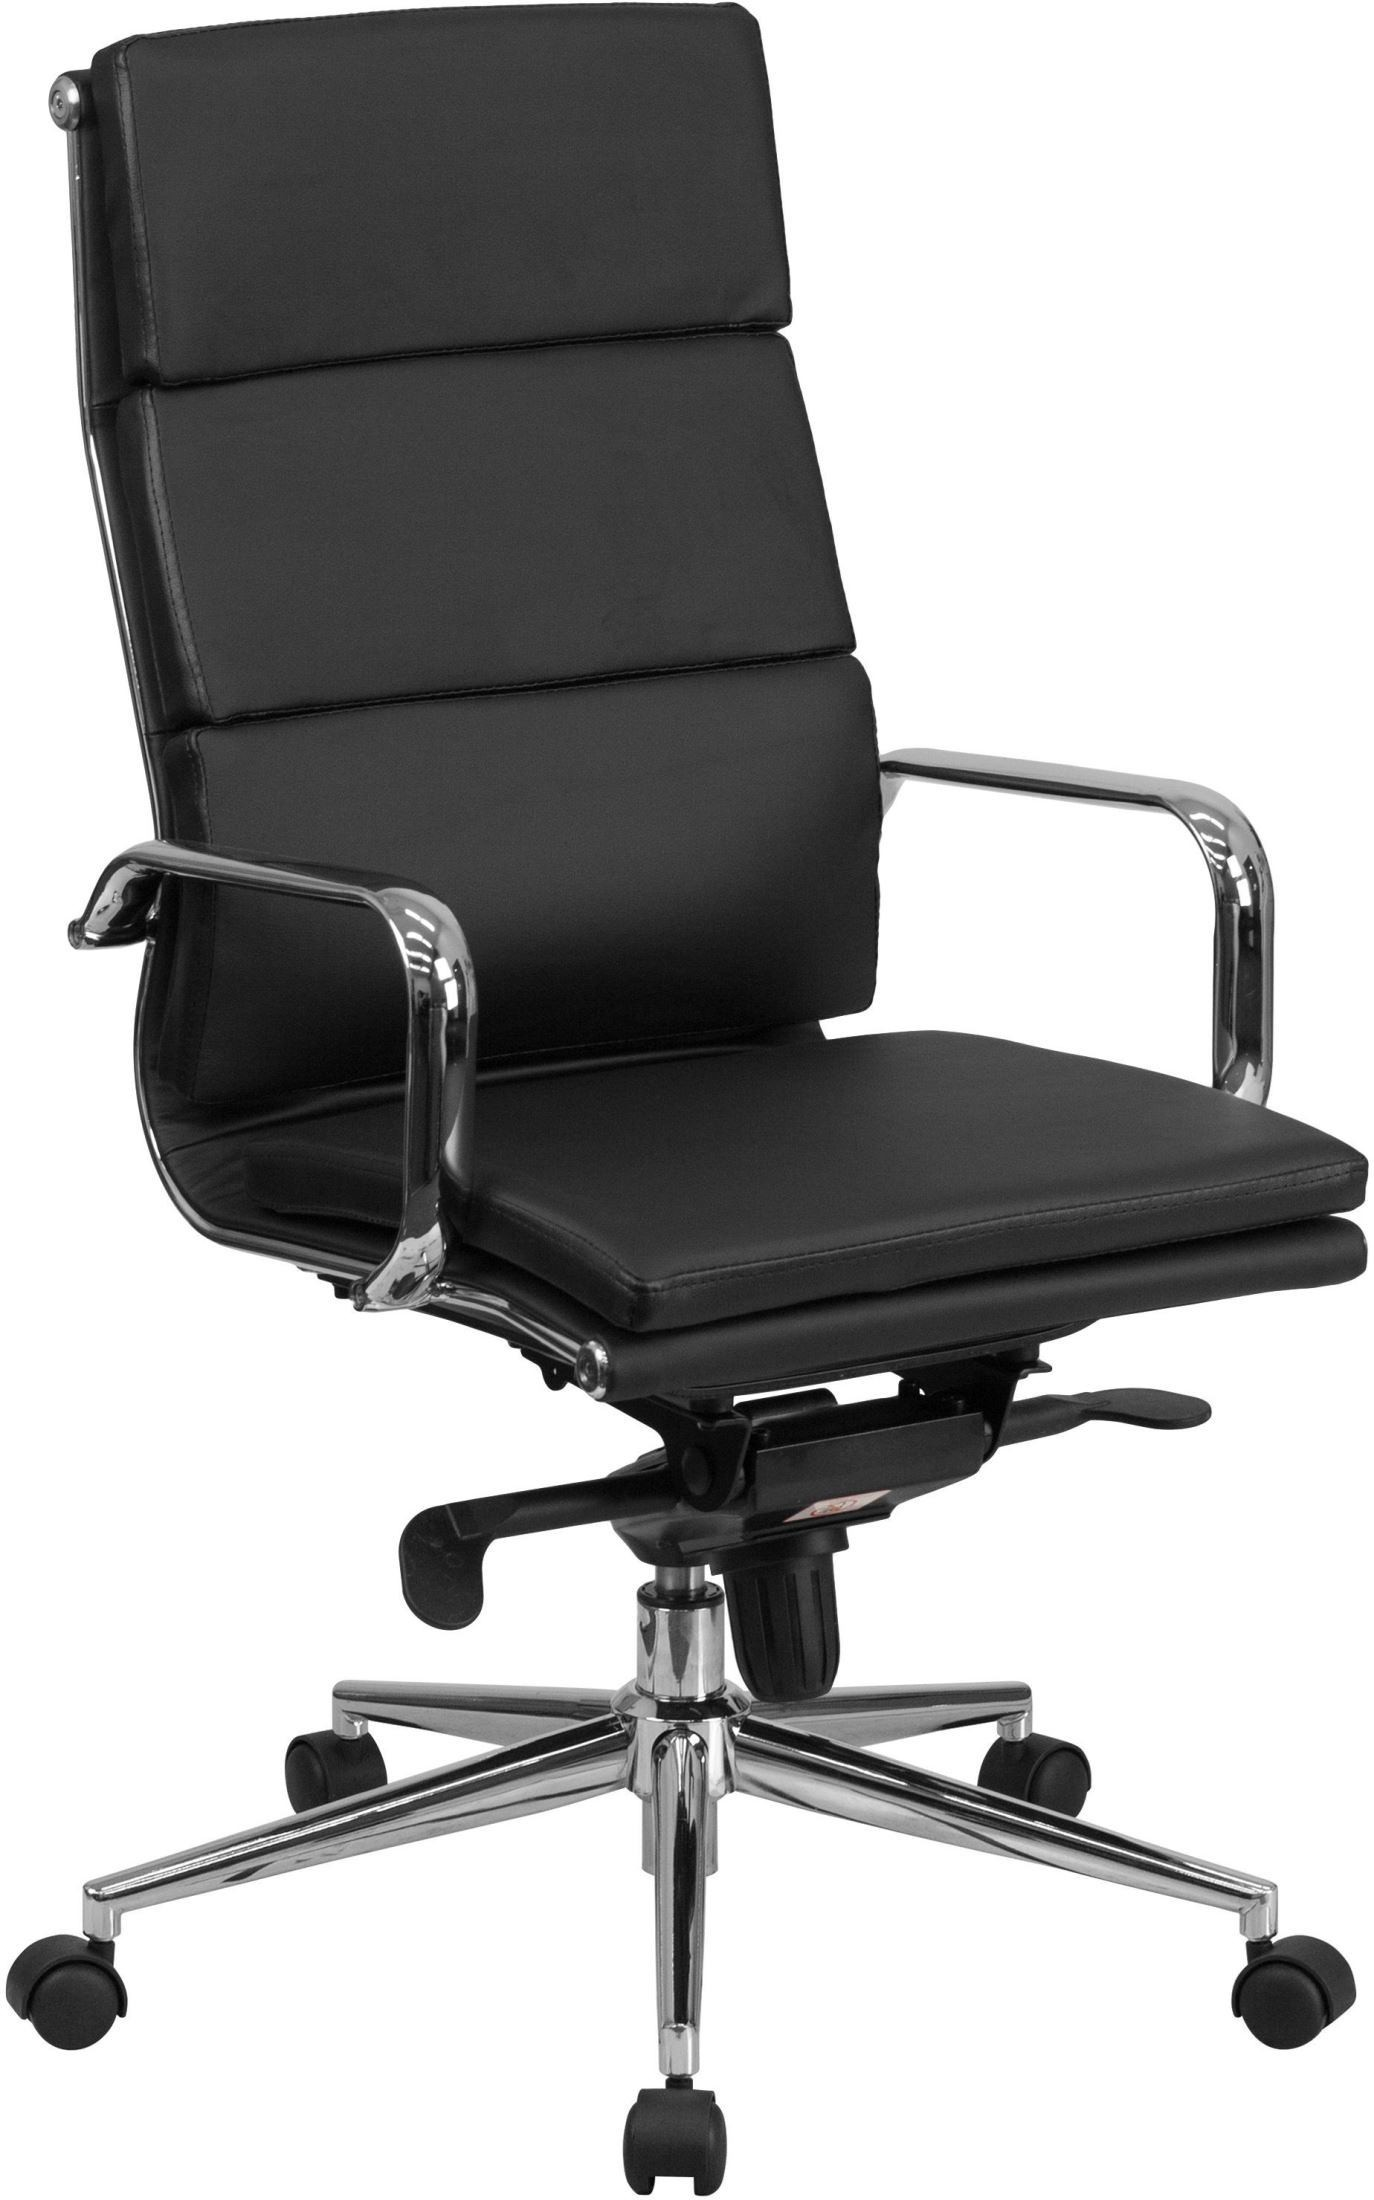 Black Swivel Chair Tall Black Executive Swivel Office Chair With Synchro Tilt